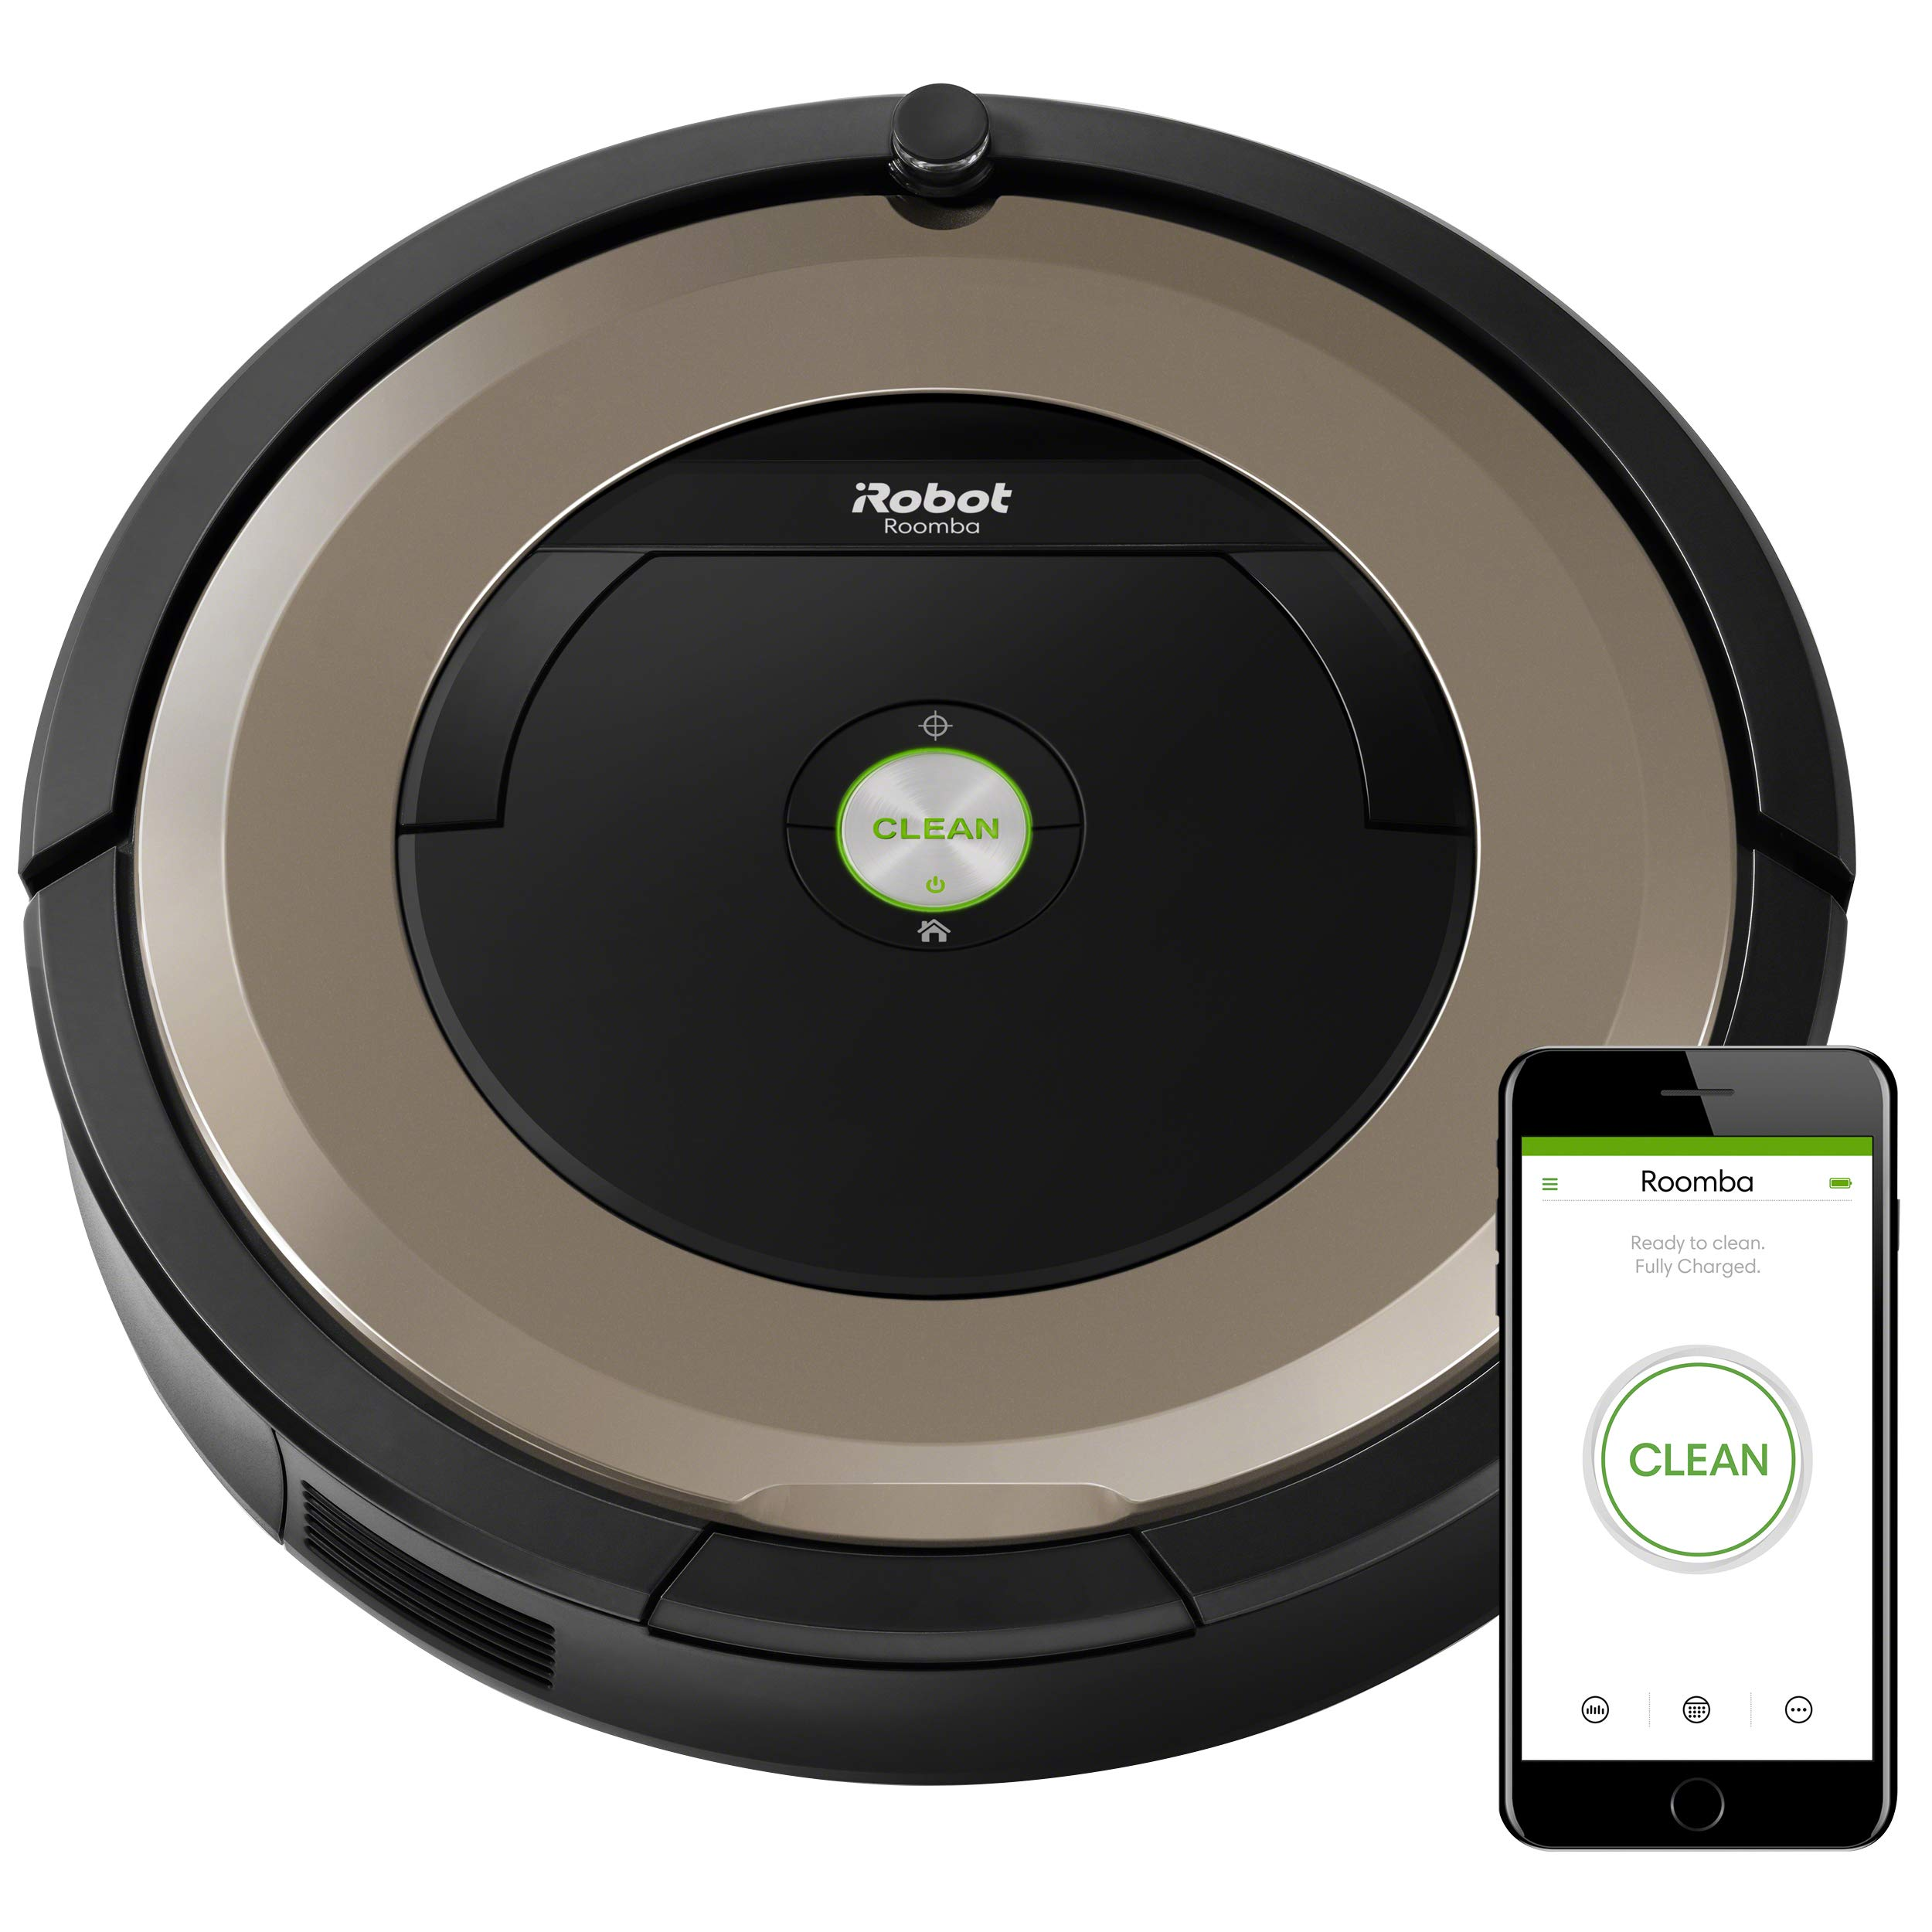 iRobot Roomba 891 Robot Vacuum- Wi-Fi Connected, Works with Alexa, Ideal for Pet Hair, Carpets, Hard Floors by iRobot